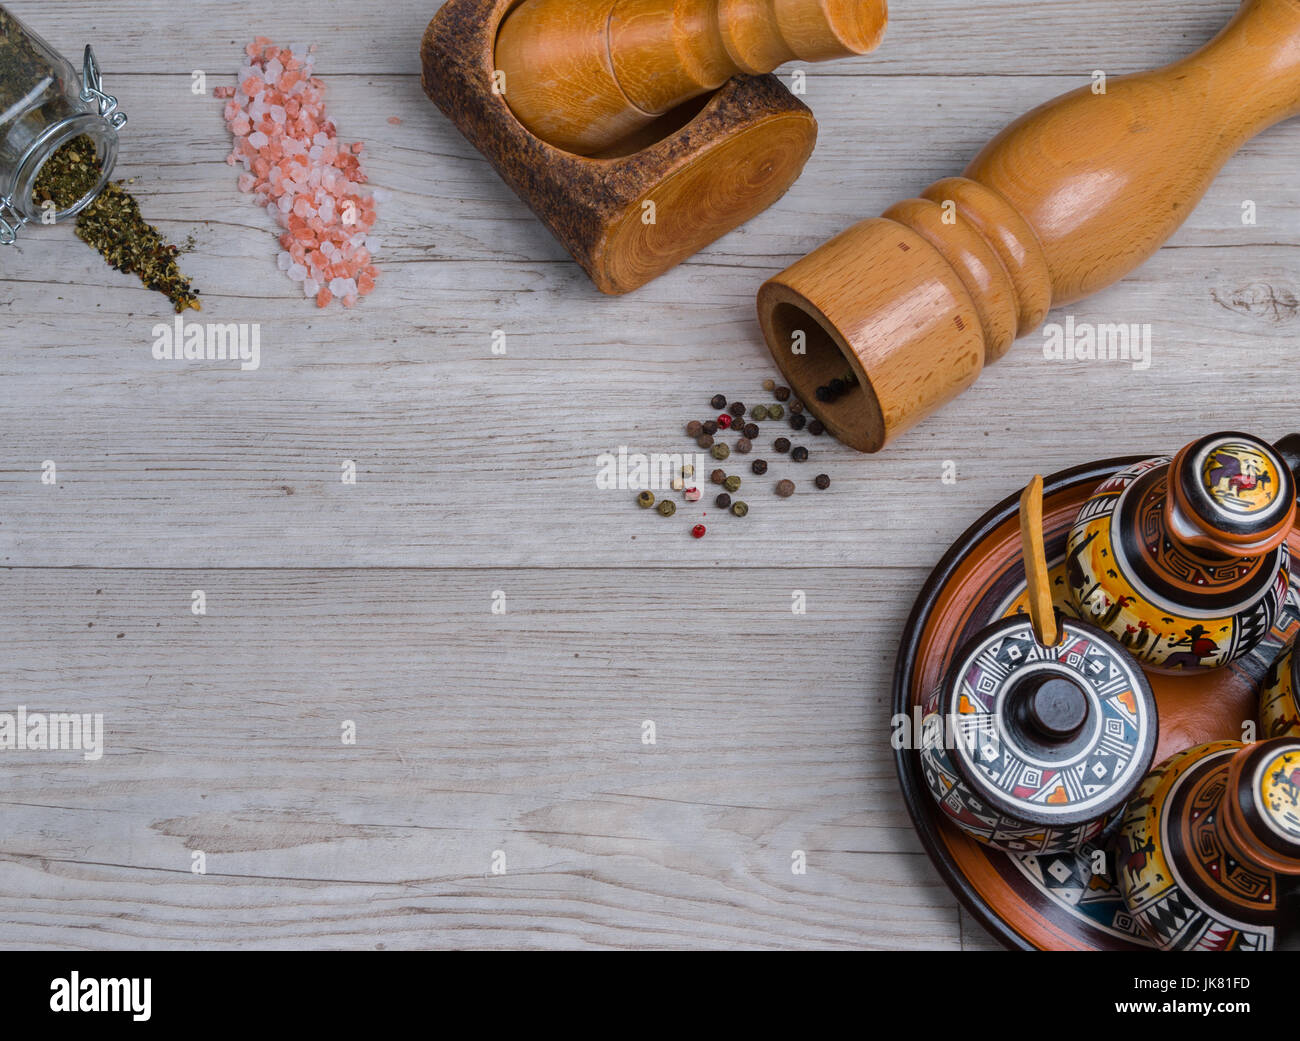 composition of various herbs and spices - Stock Image